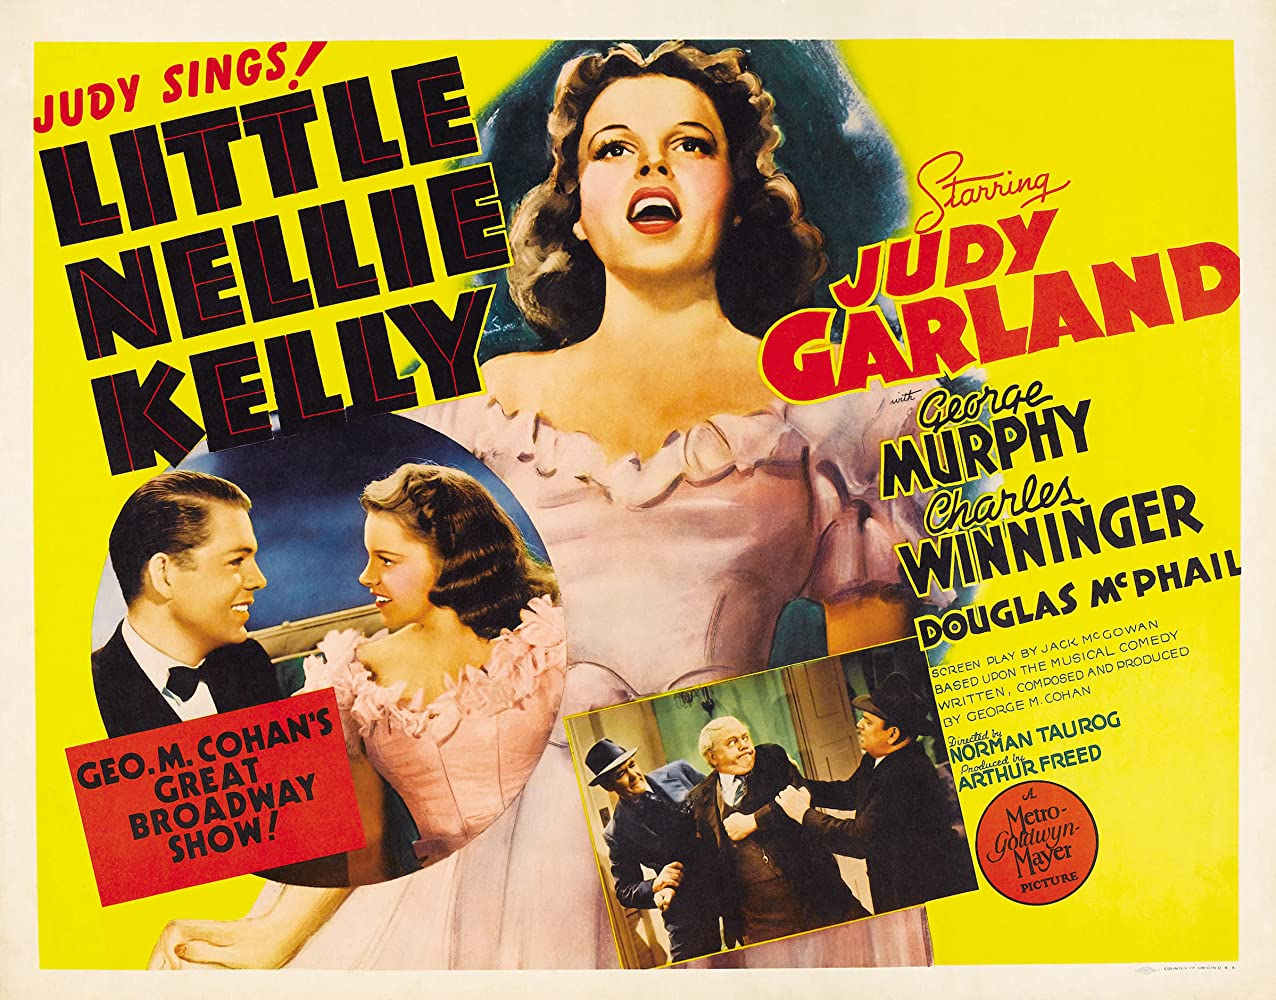 Judy Garland, Douglas McPhail, and Charles Winninger in Little Nellie Kelly (1940)